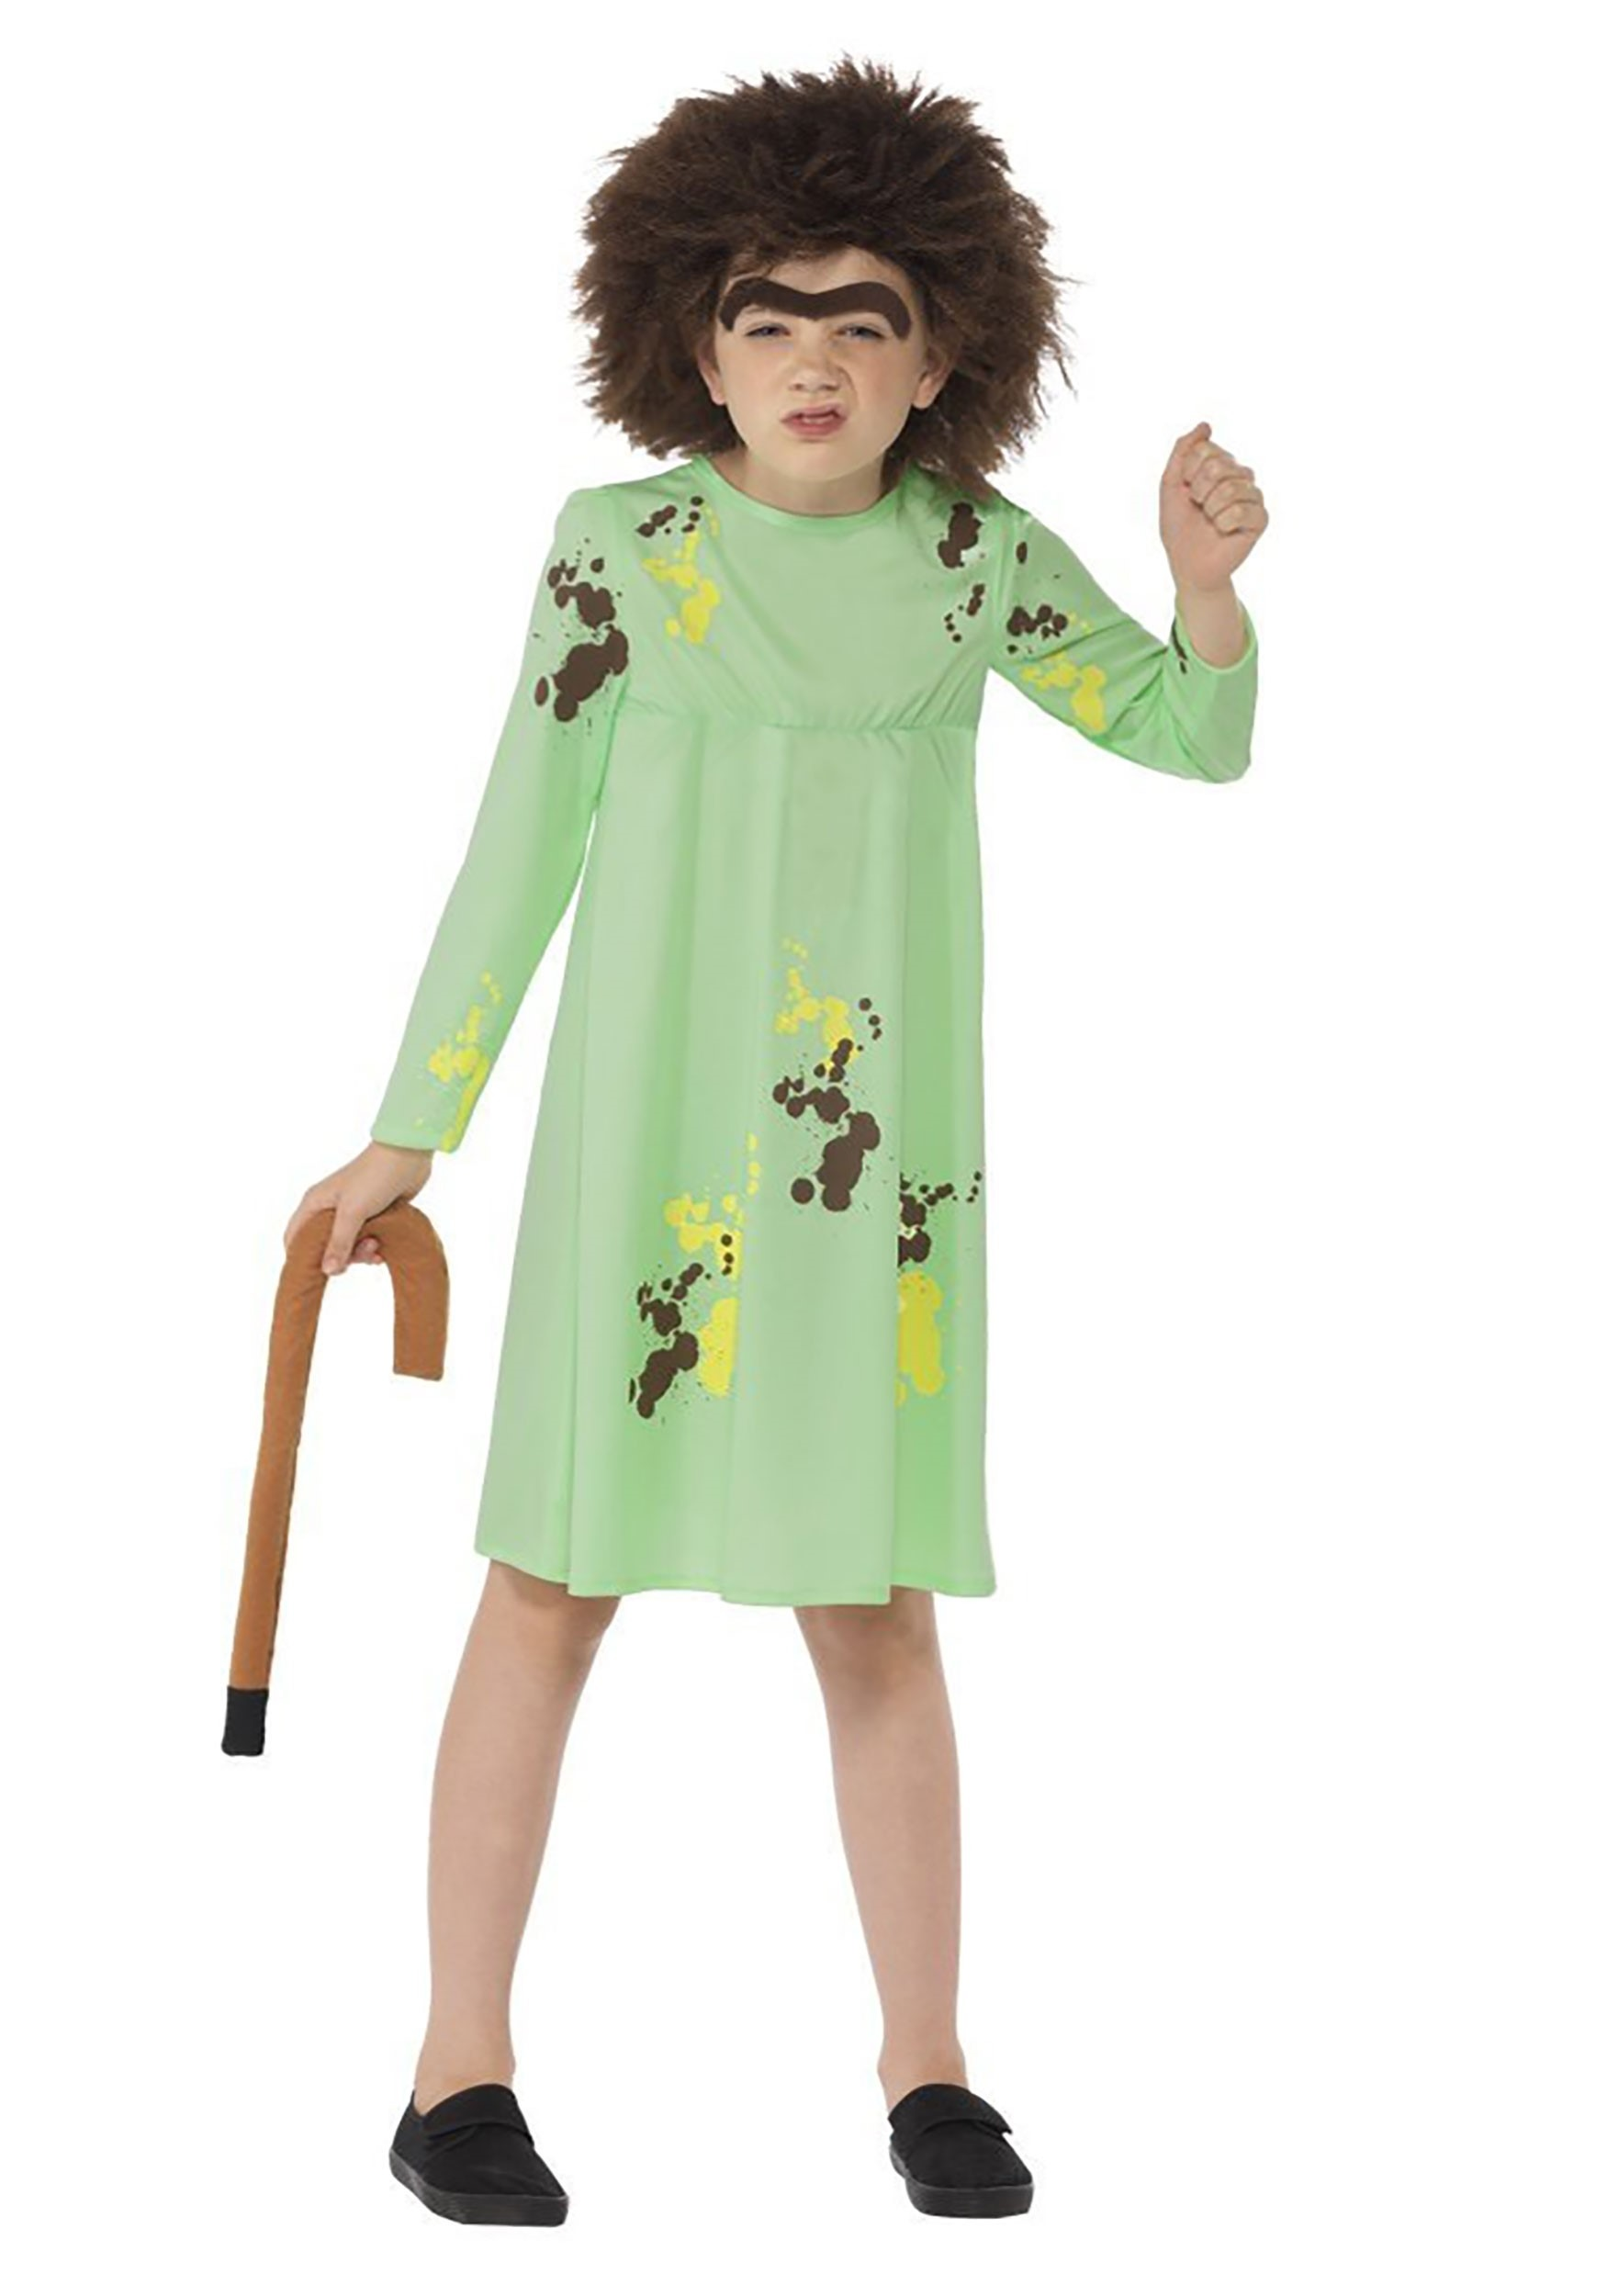 Roald Dahl The Twits Kids Mrs. Twit Costume